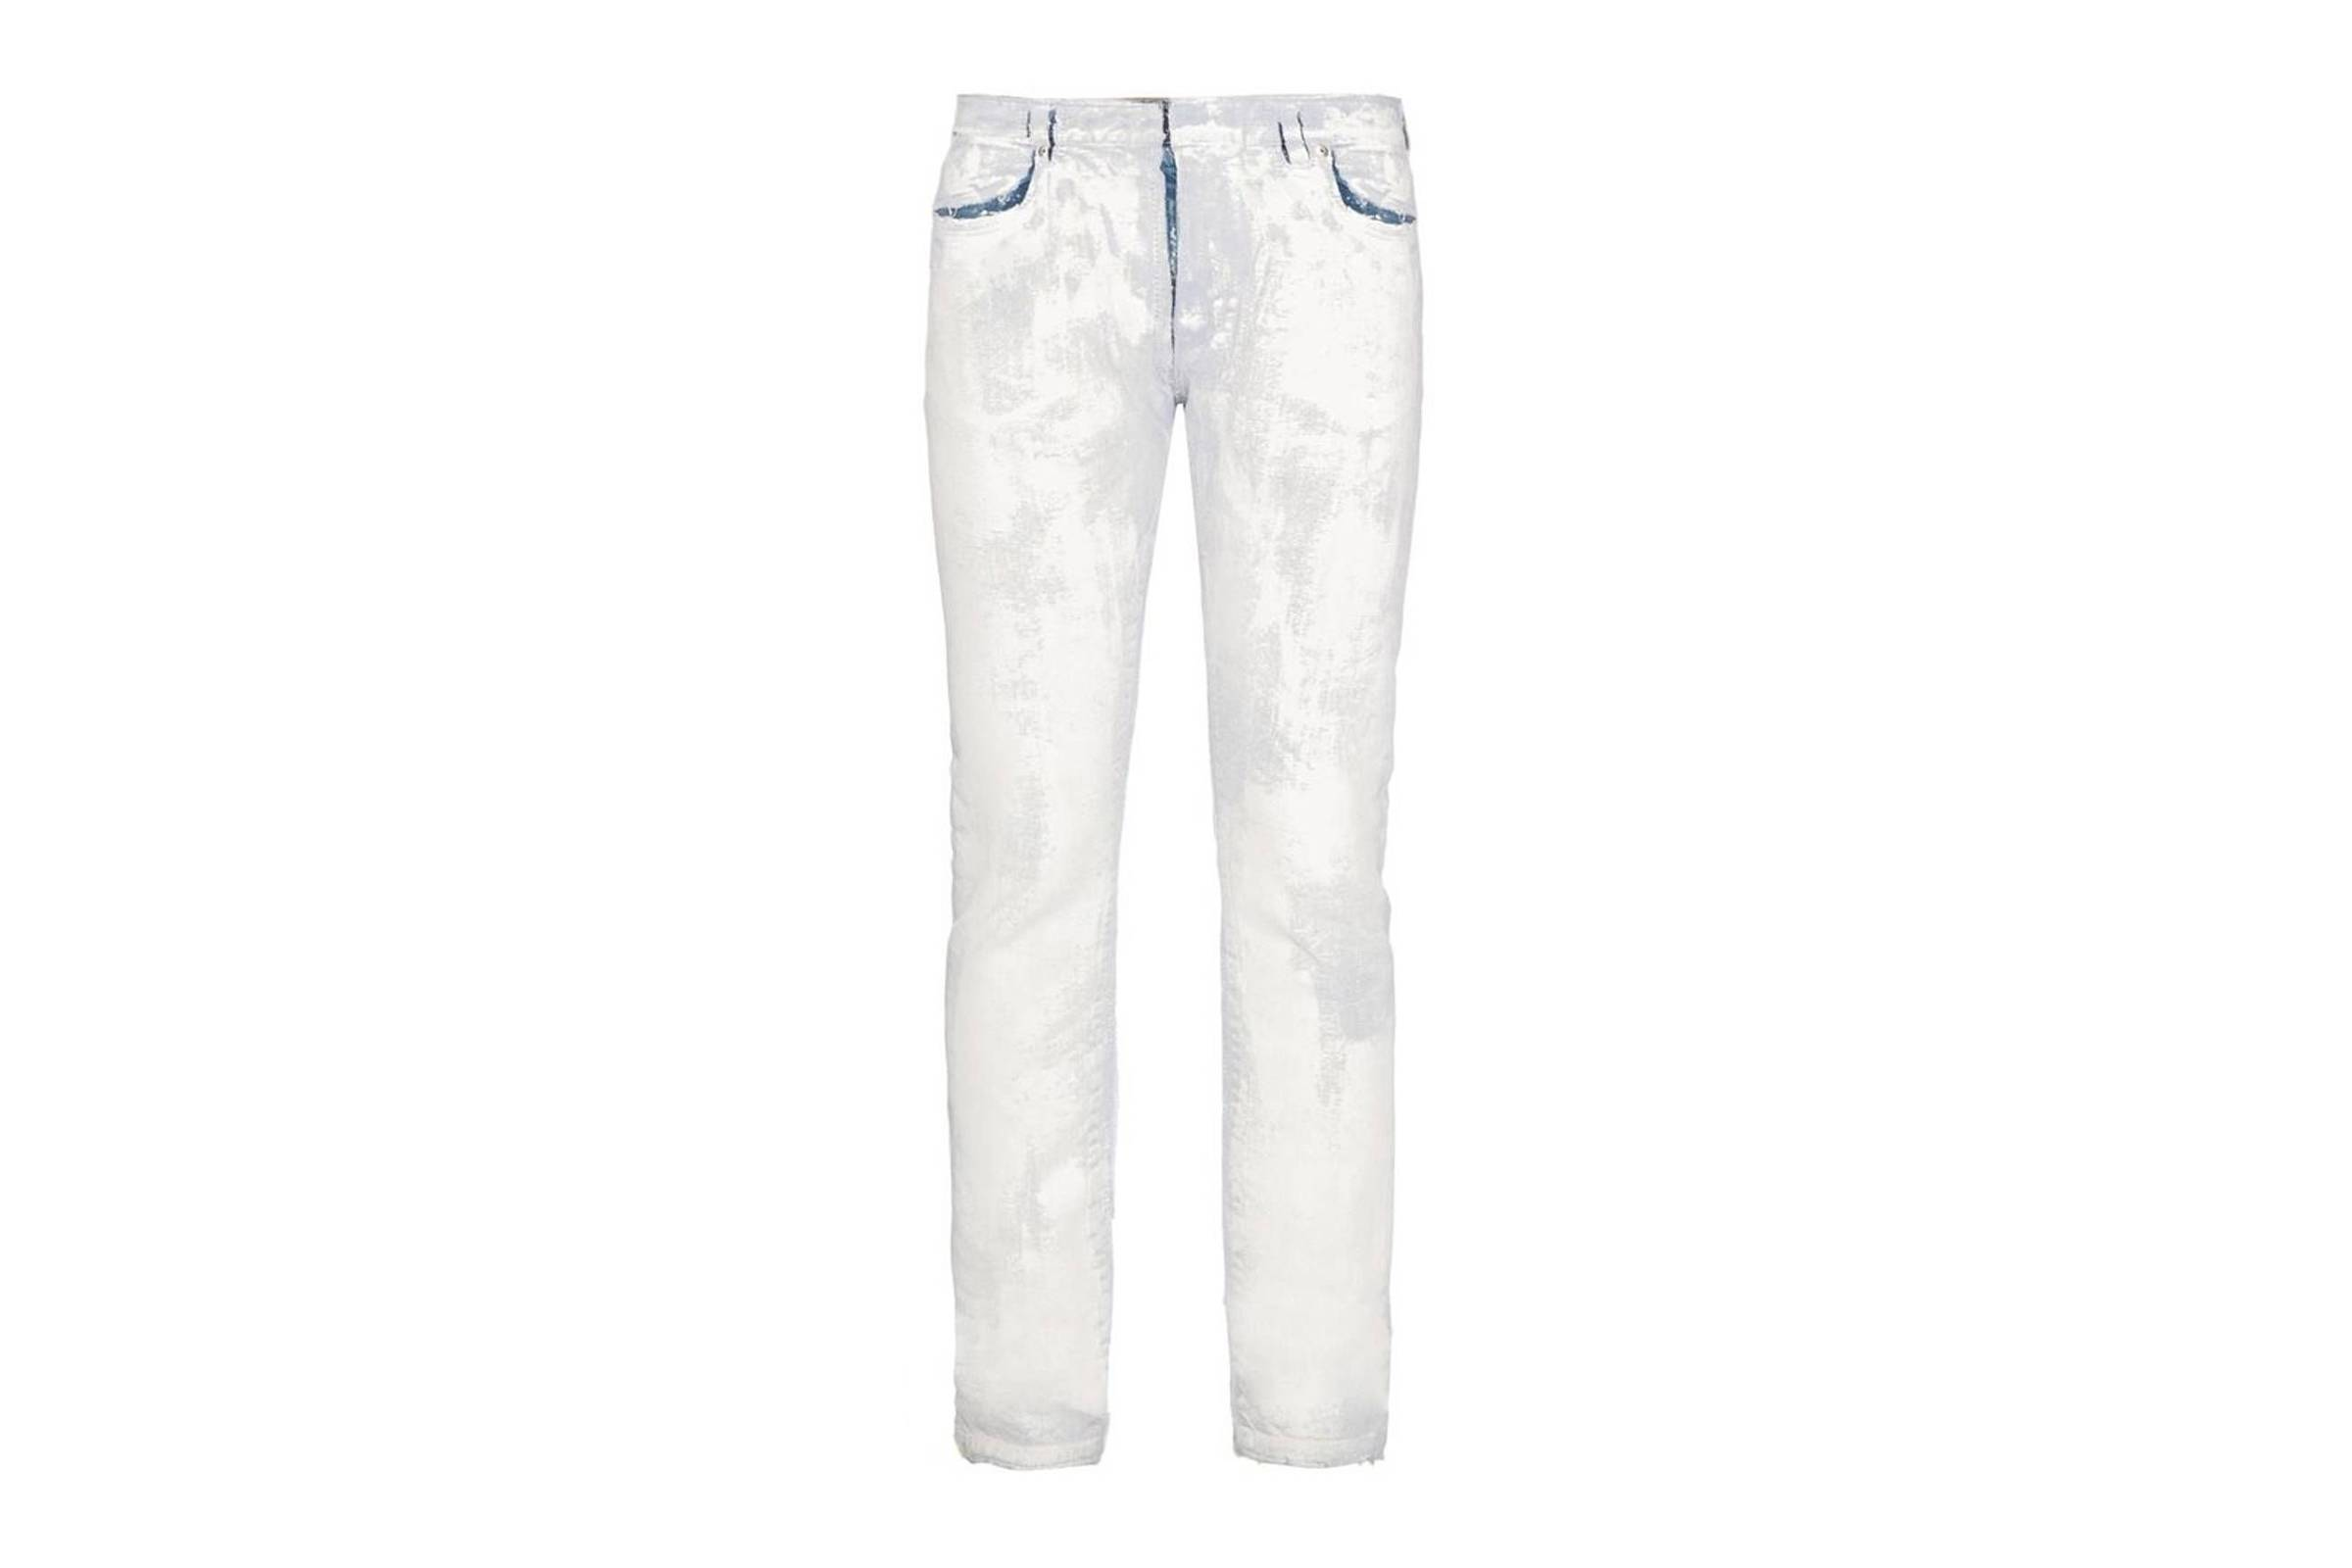 Maison Margiela Painted Denim